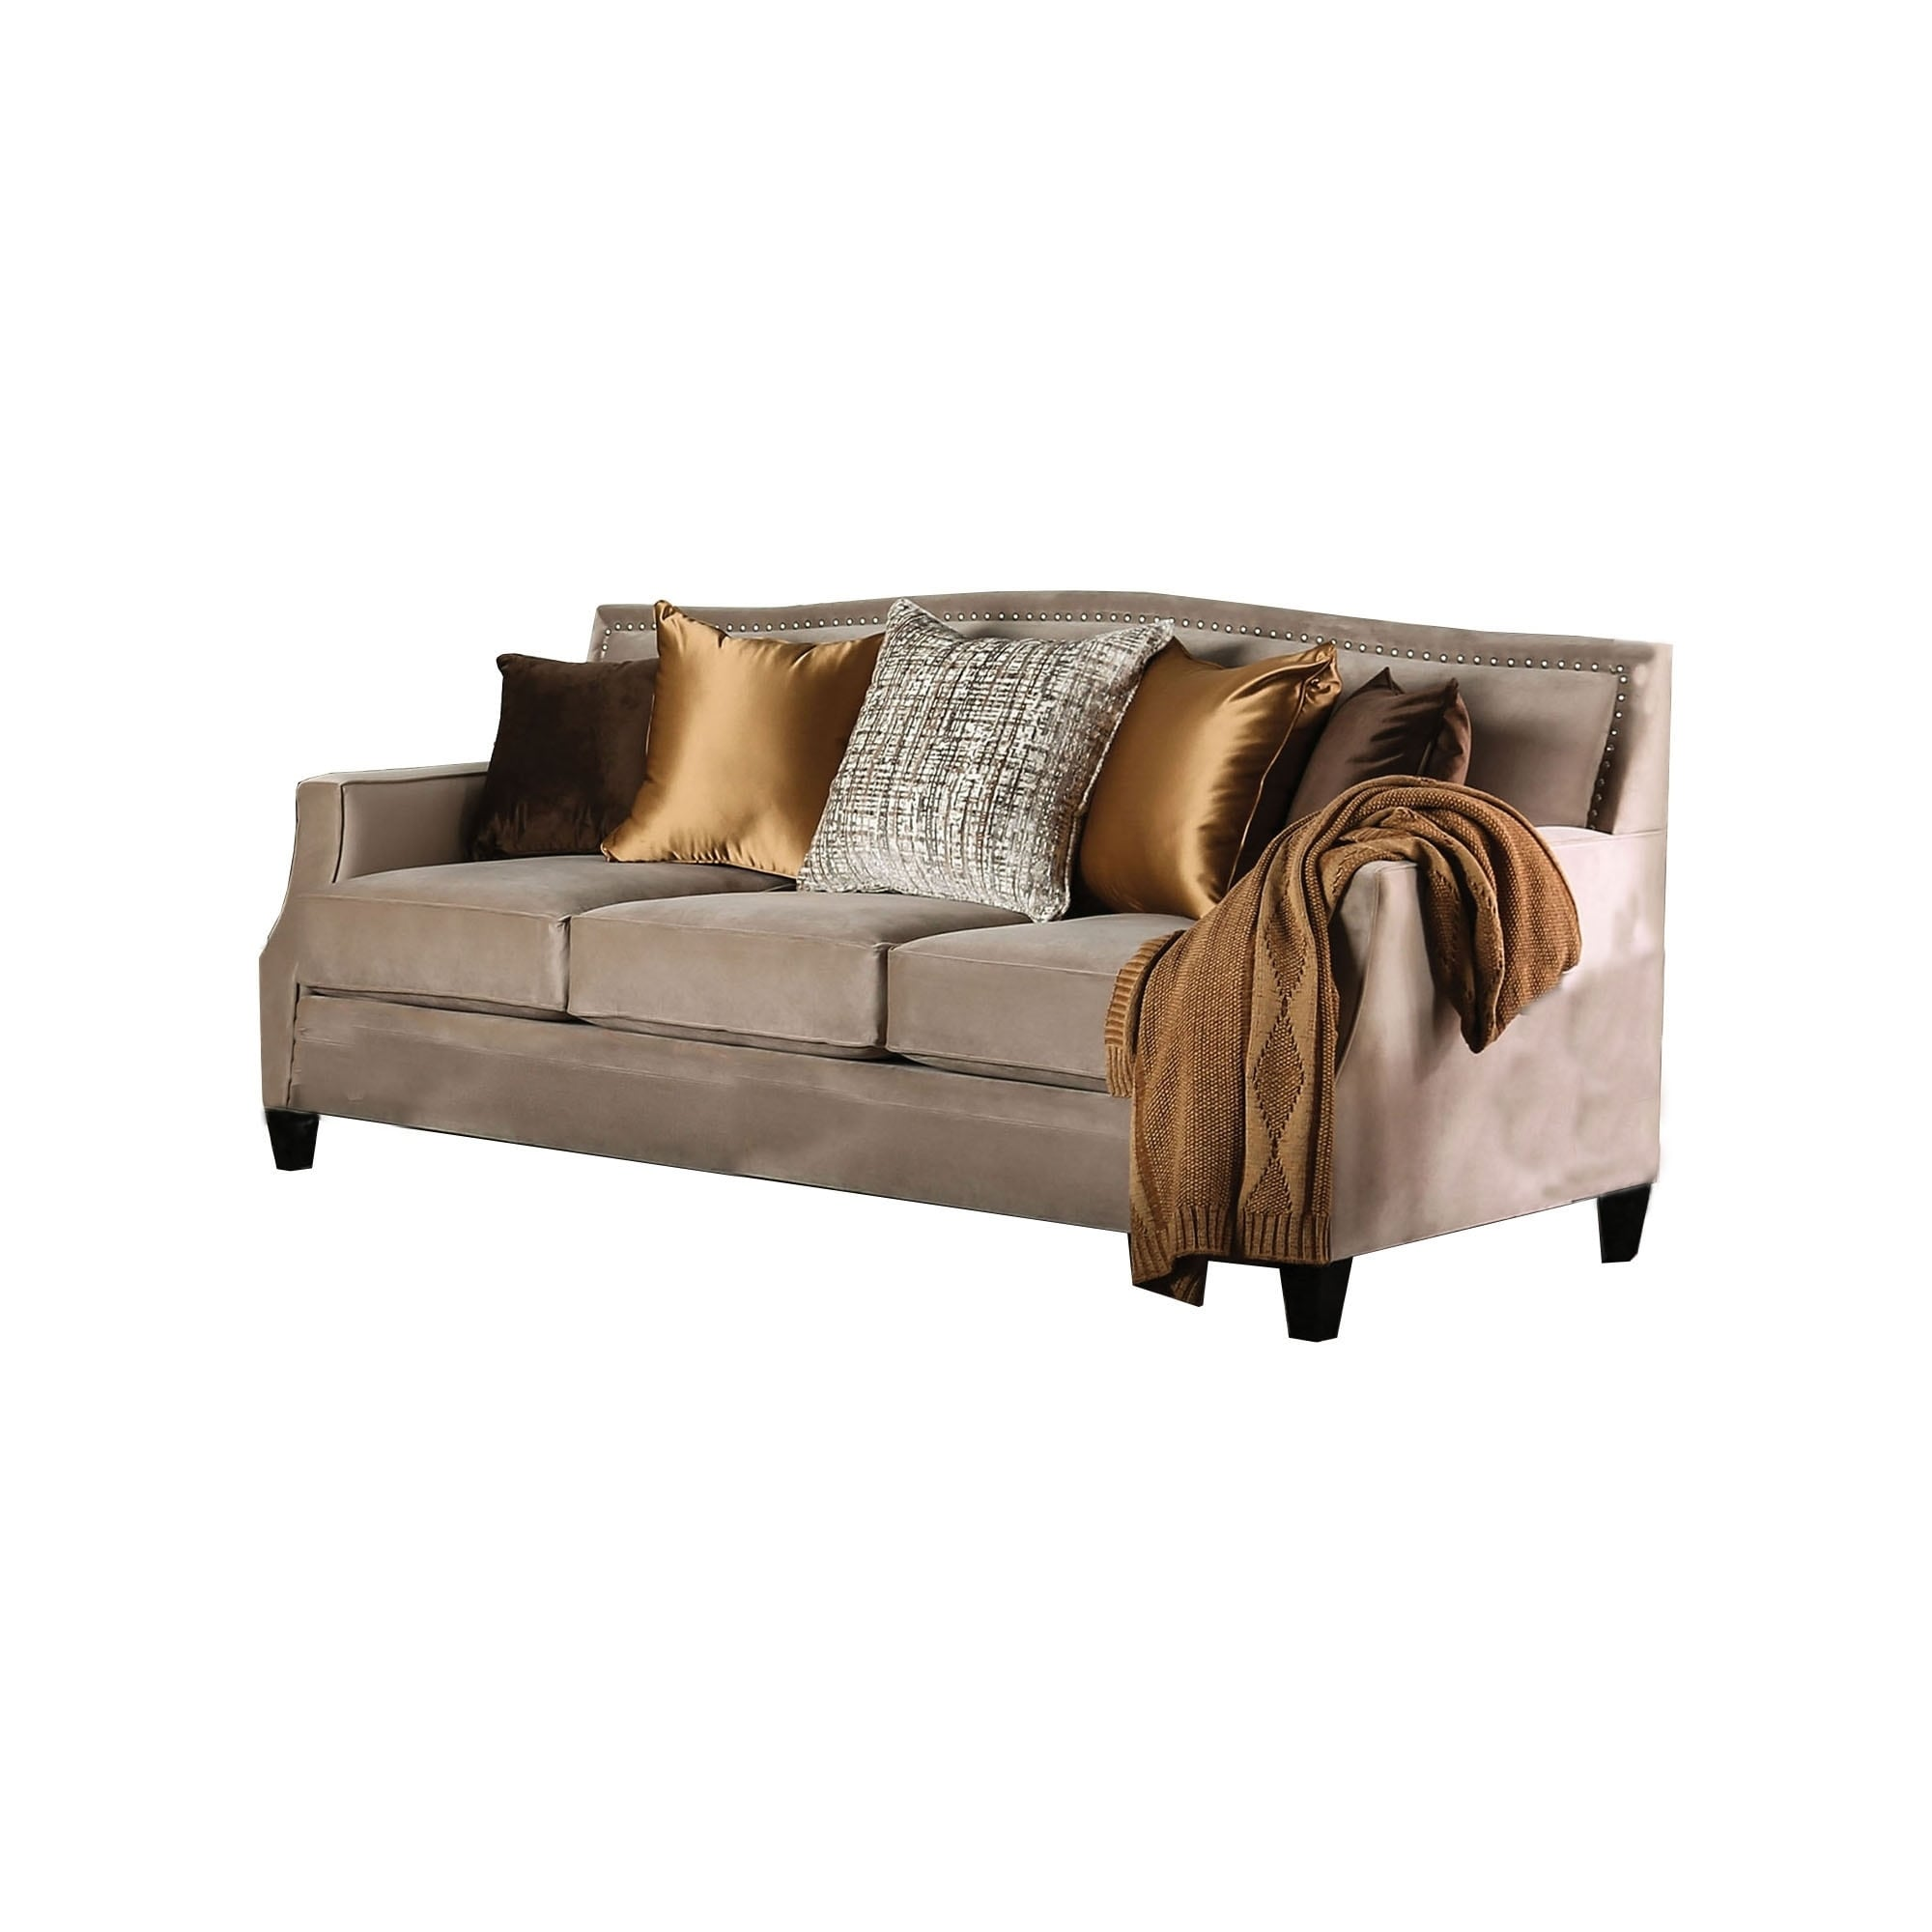 Fabric Upholstered Wooden Sofa